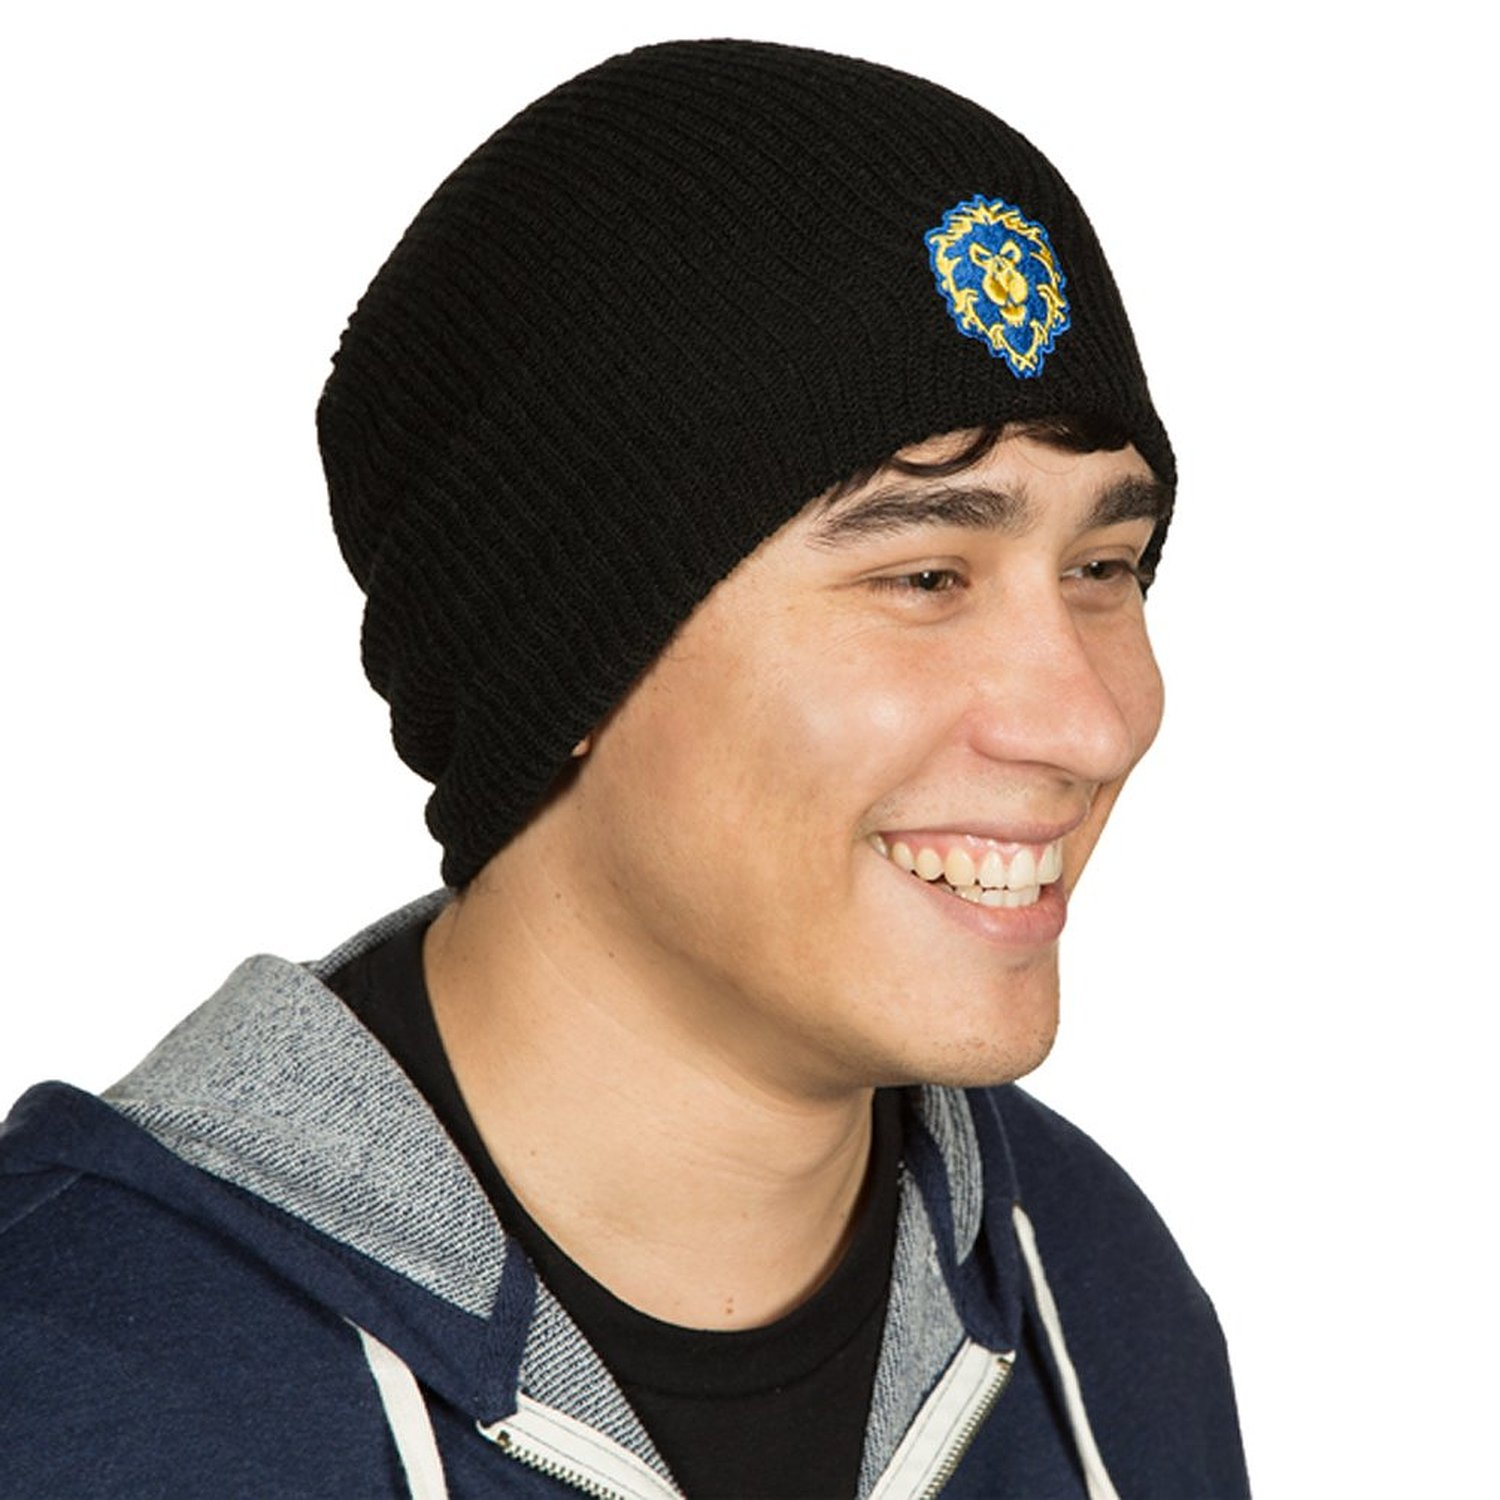 World of Warcraft Warlords Draenor Alliance Beanie Black One Size